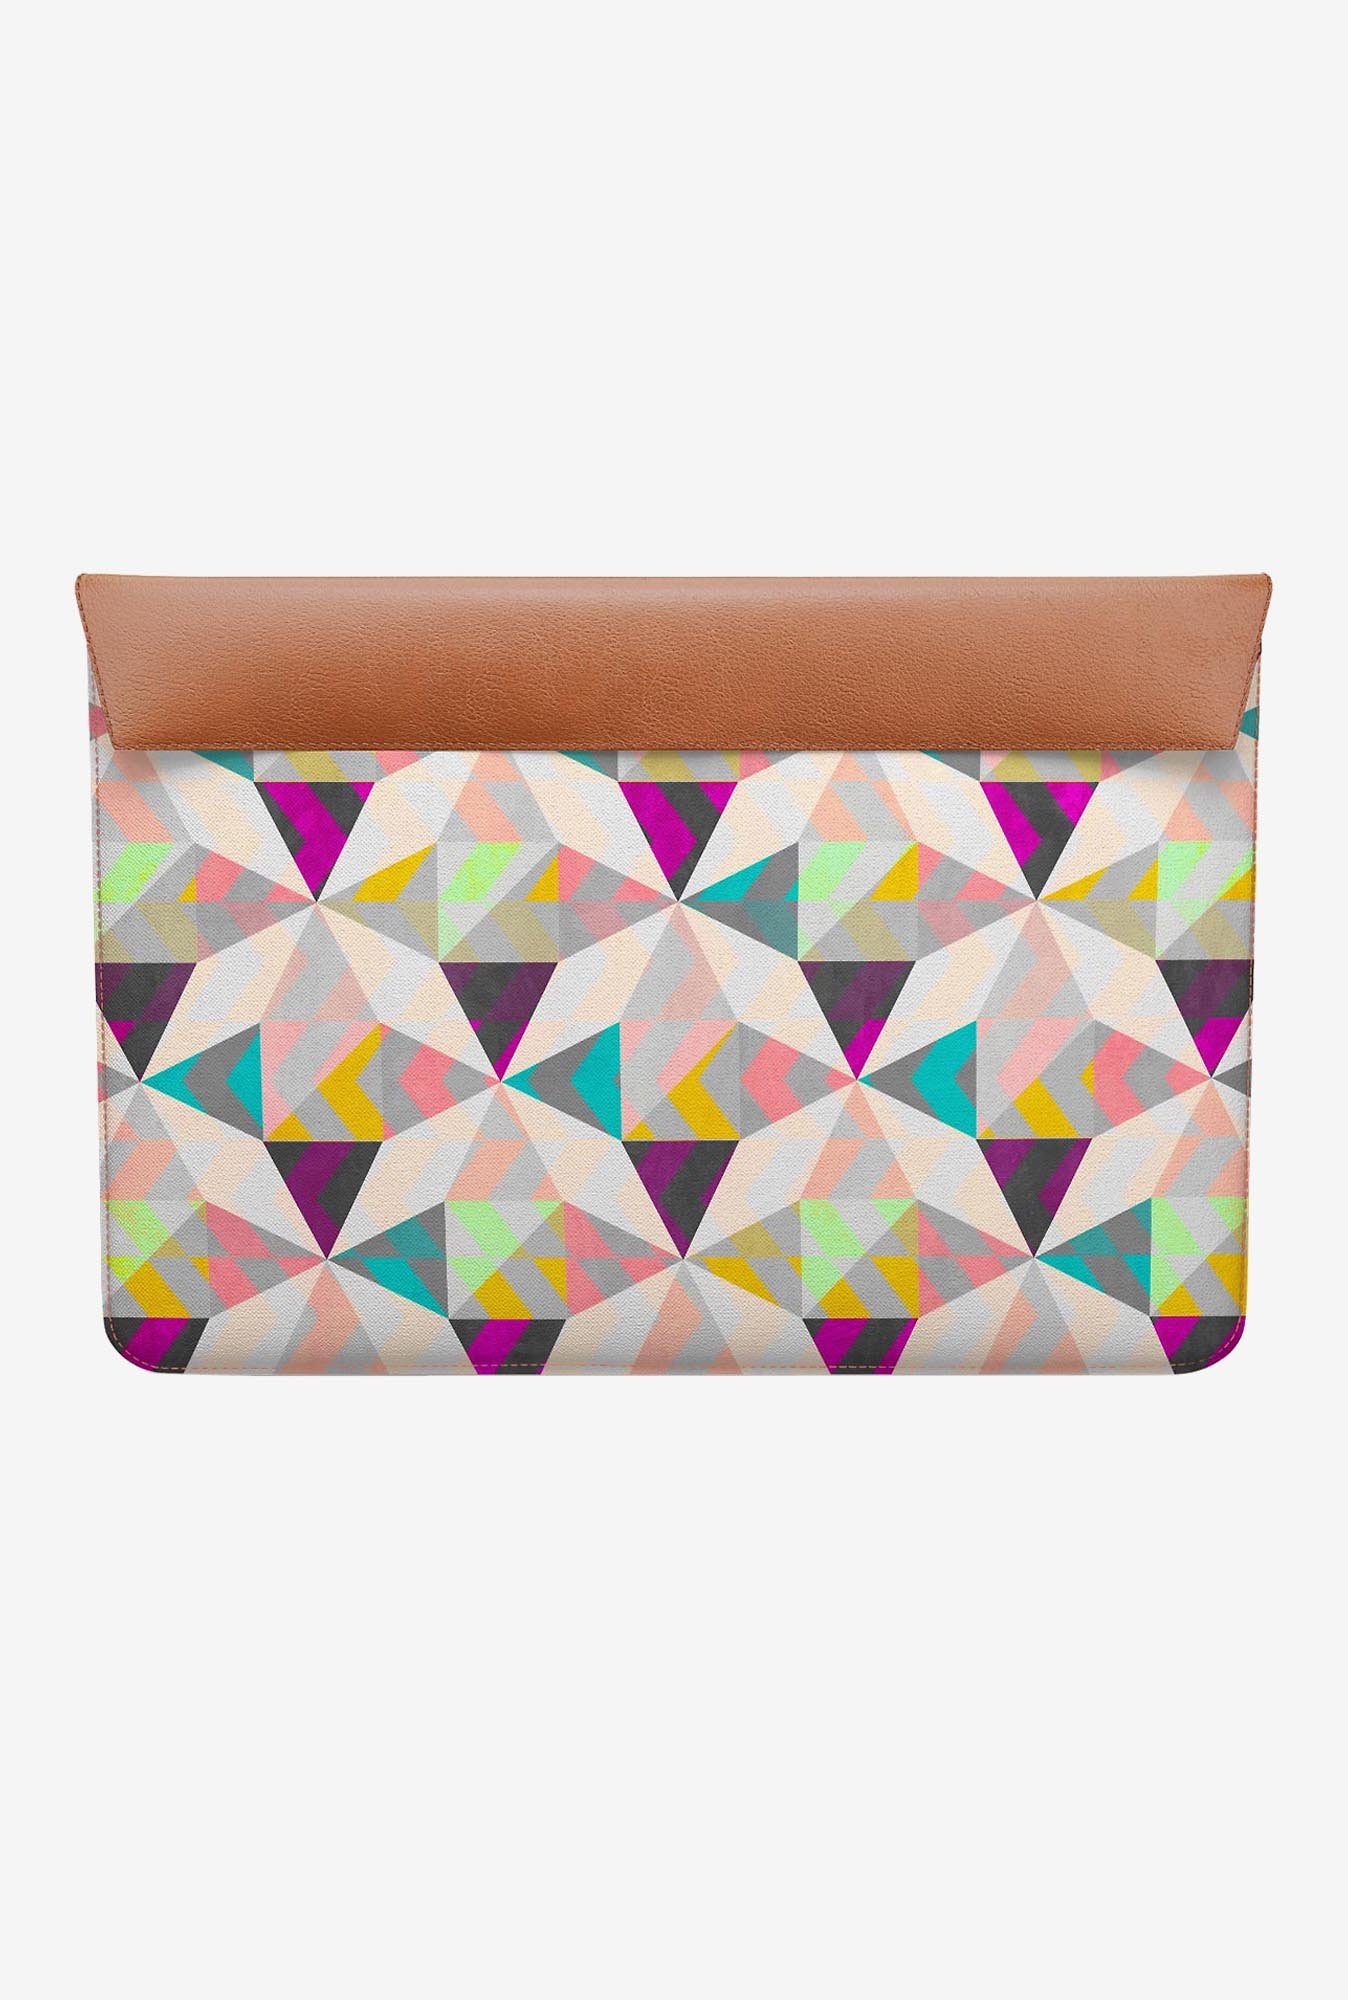 DailyObjects True diamonds MacBook 12 Envelope Sleeve